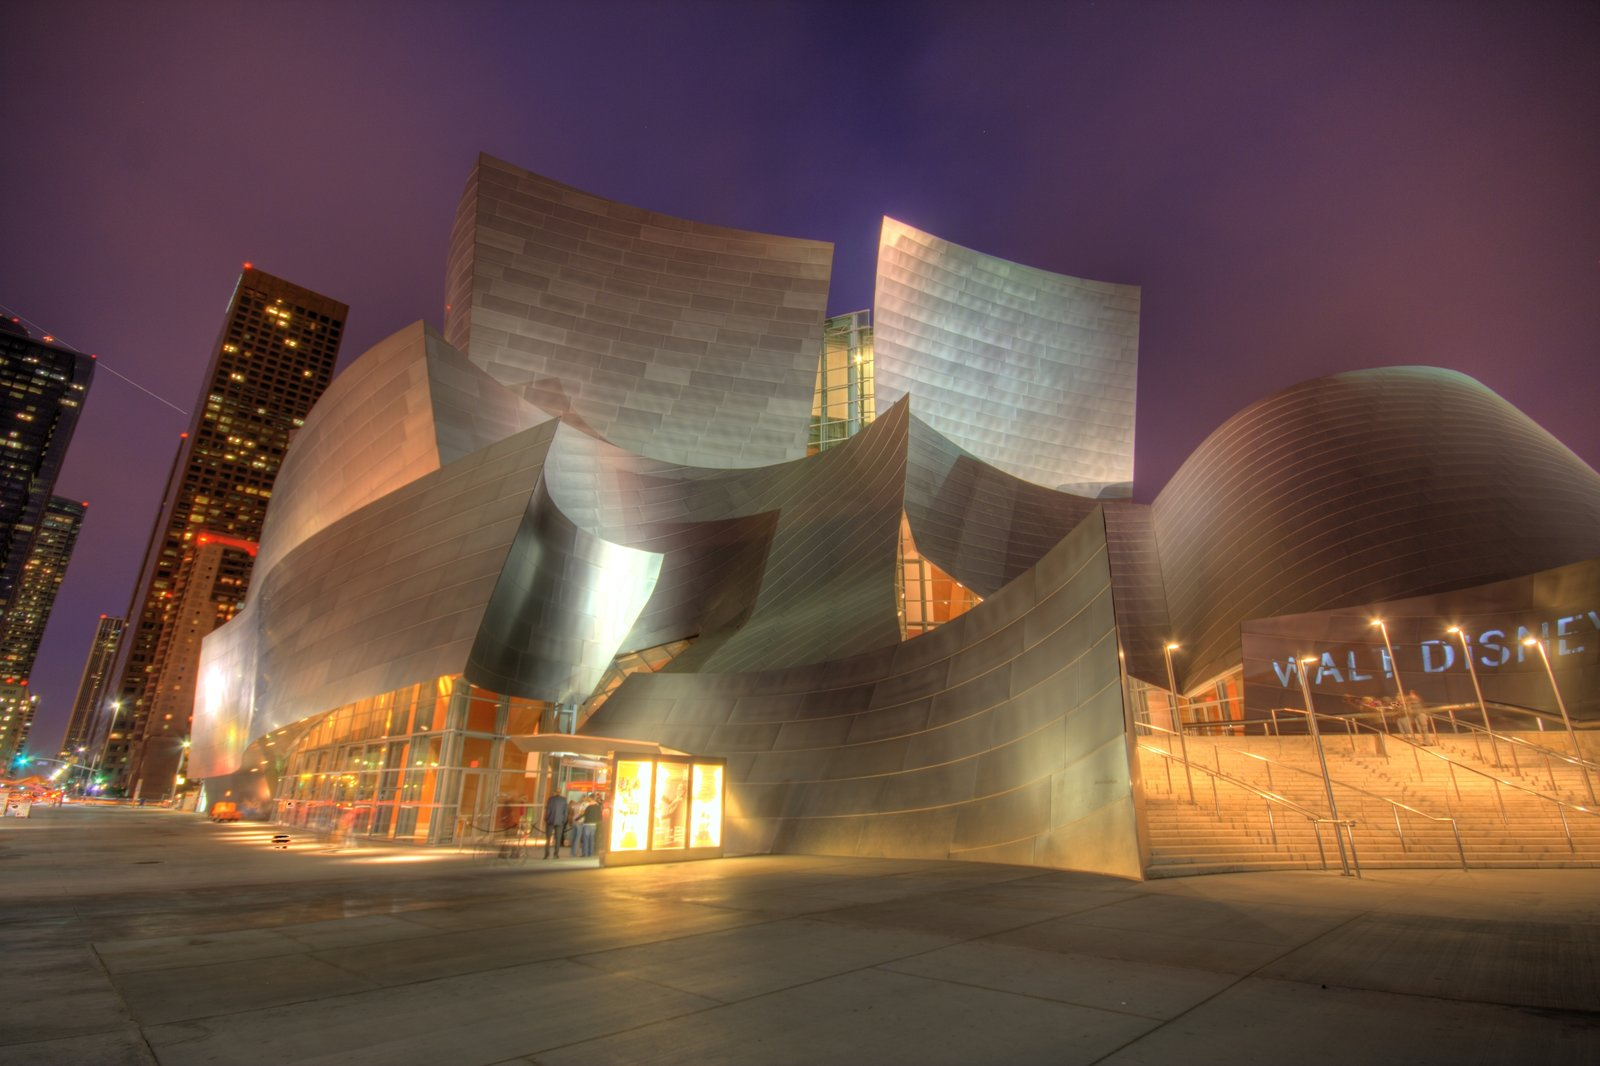 Exterior Walt Disney Concert Hall has received wide acclaim for its excellent acoustics and distinctive architecture. In the decade since its opening, the hall's sweeping, metallic surfaces have become associated with Frank Gehry's signature style.  Photo 3 of 14 in 13 Iconic Buildings Designed by Frank Gehry